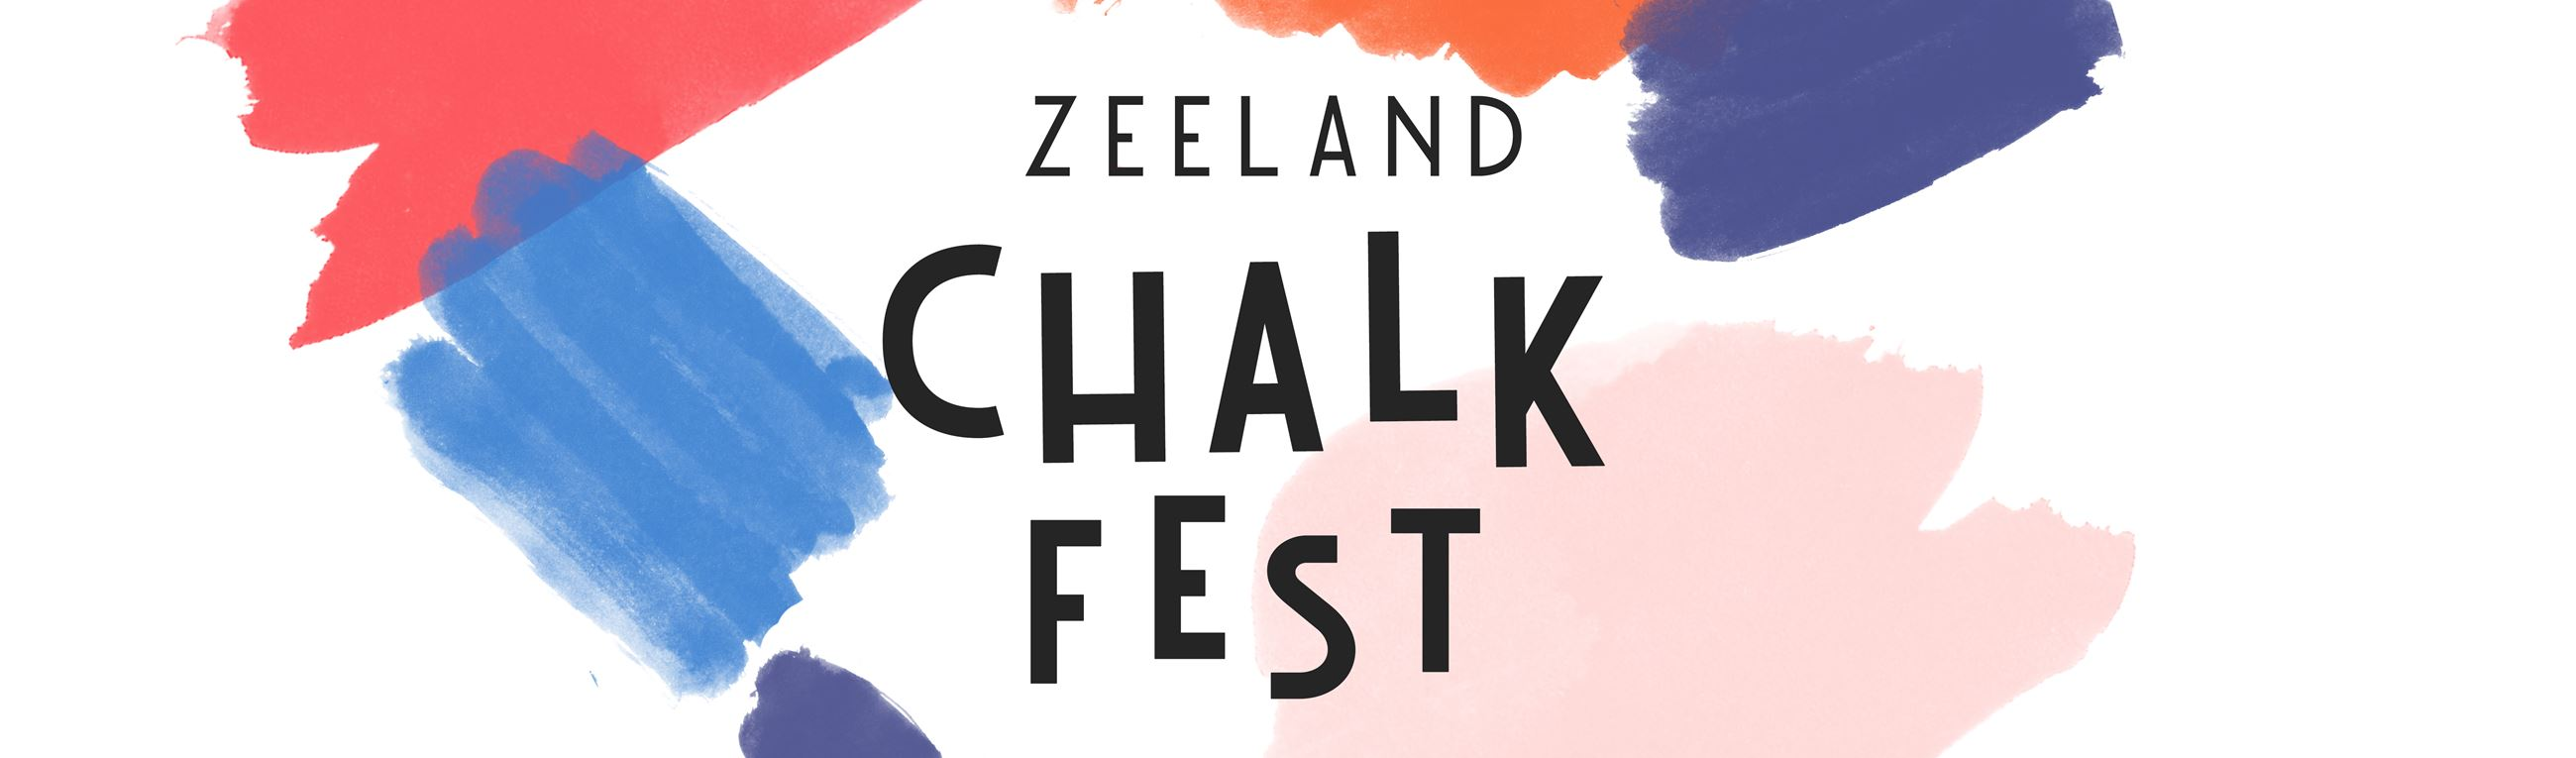 chalk-fest-website-banner-